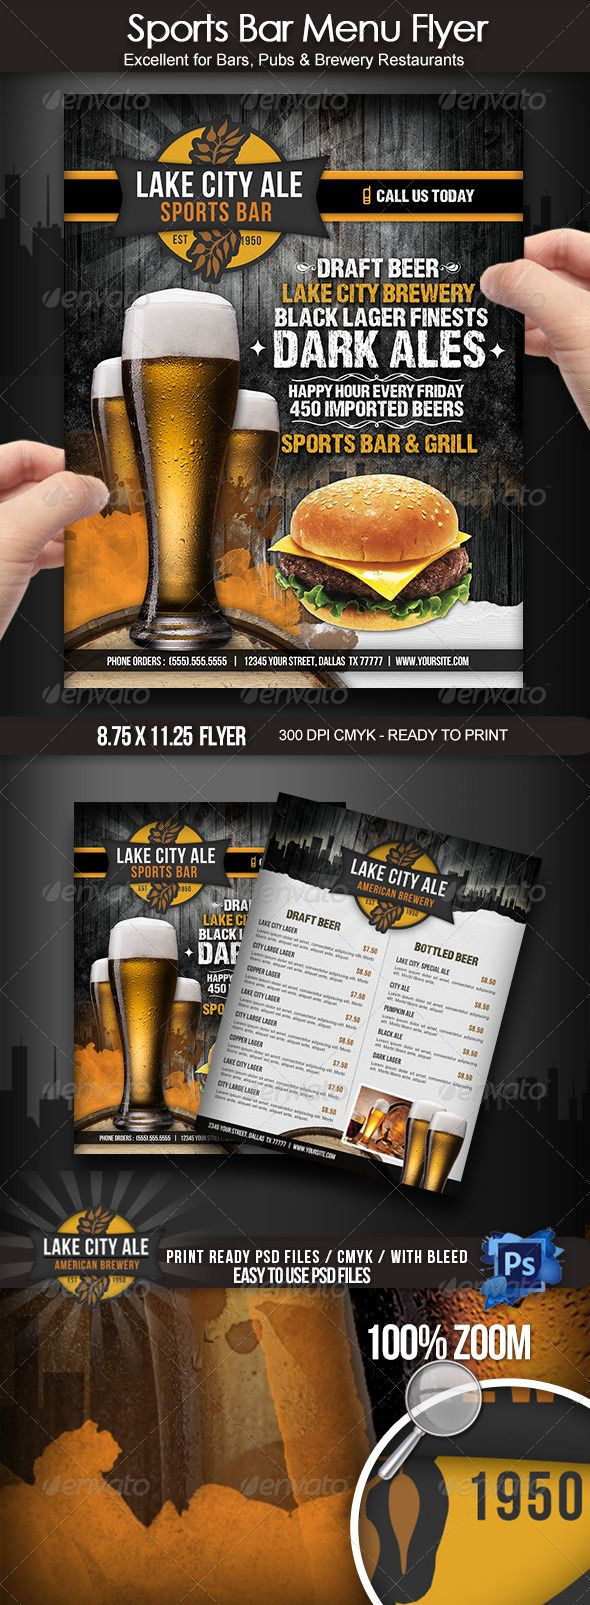 Sports Bar Menu Flyer tall glass • Available here → graphicriver